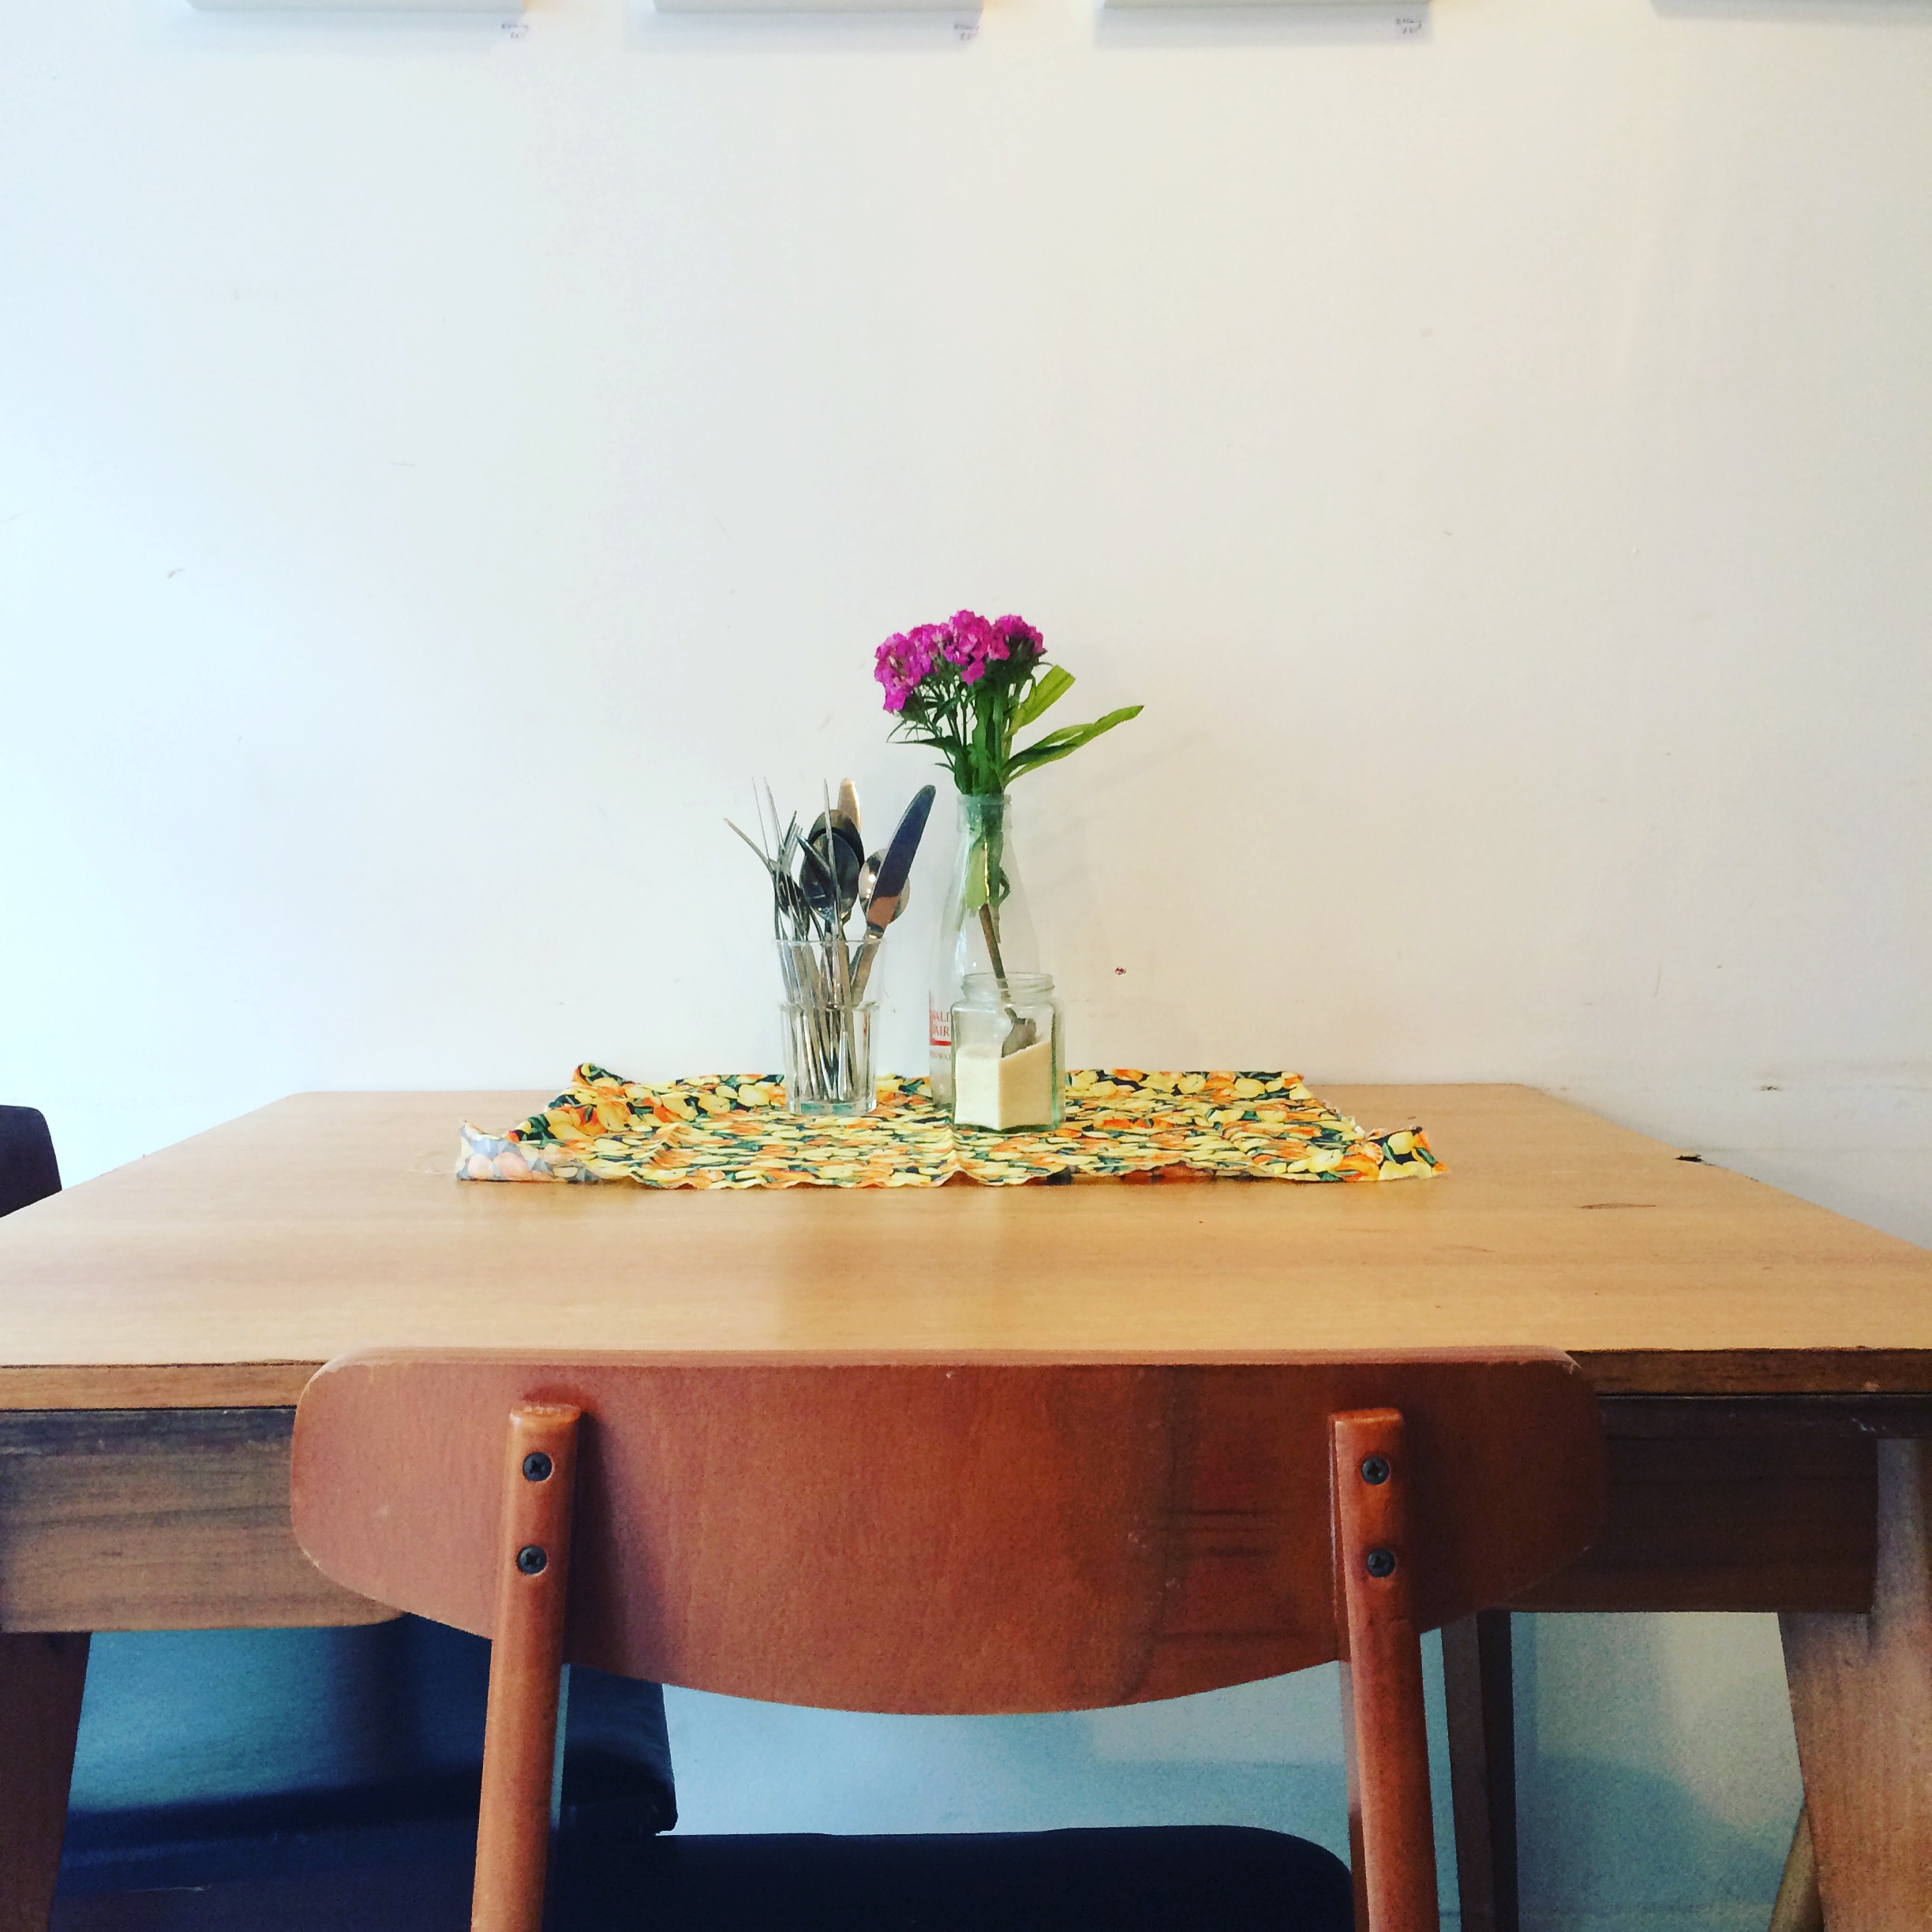 TABLE AND FLOWER.jpg